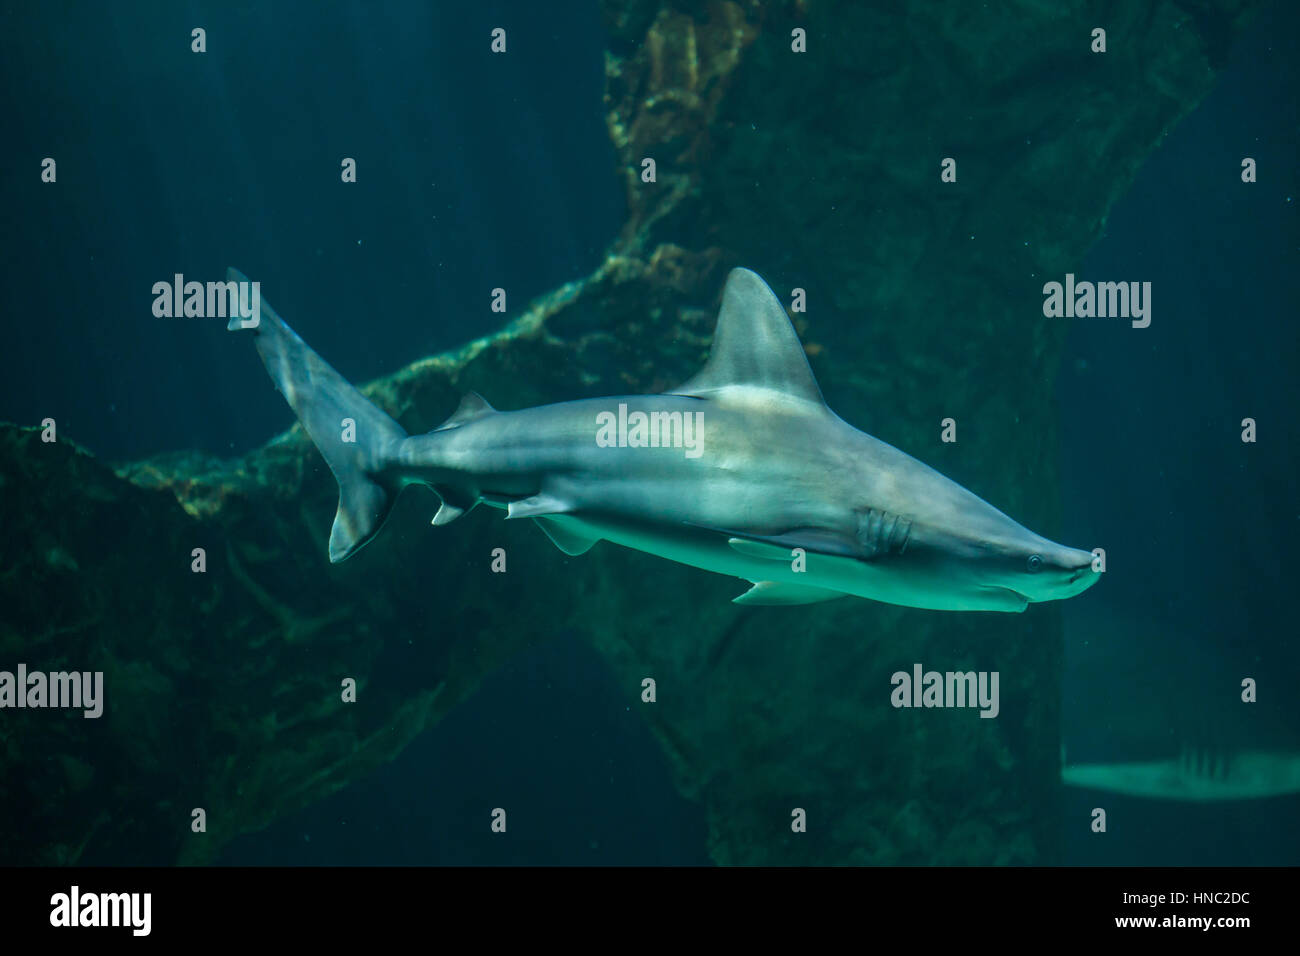 Sandbar shark (Carcharhinus plumbeus). Stock Photo